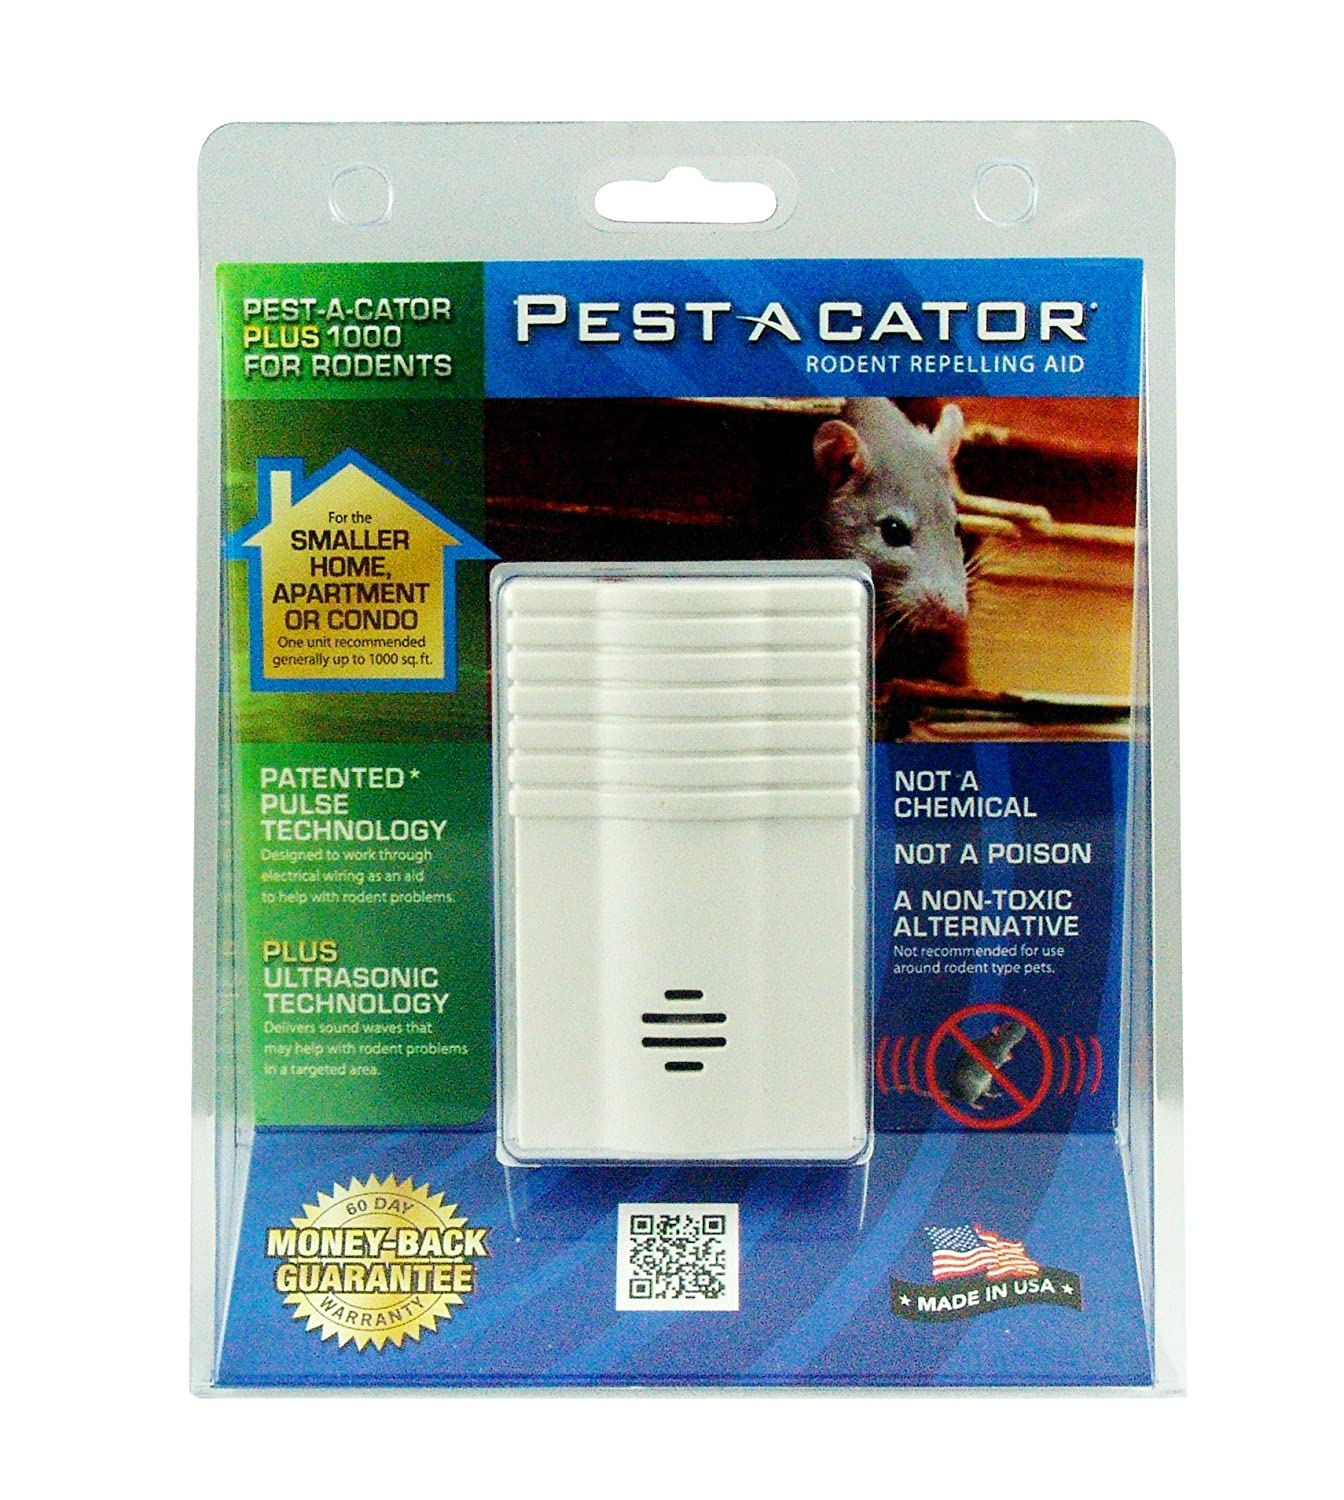 Global Instruments Rodent Repeller For Larger Areas Wiring Your Garage Pest A Cator Plus 2000 Electromagnetic Ultrasonic R Home Repellents Garden